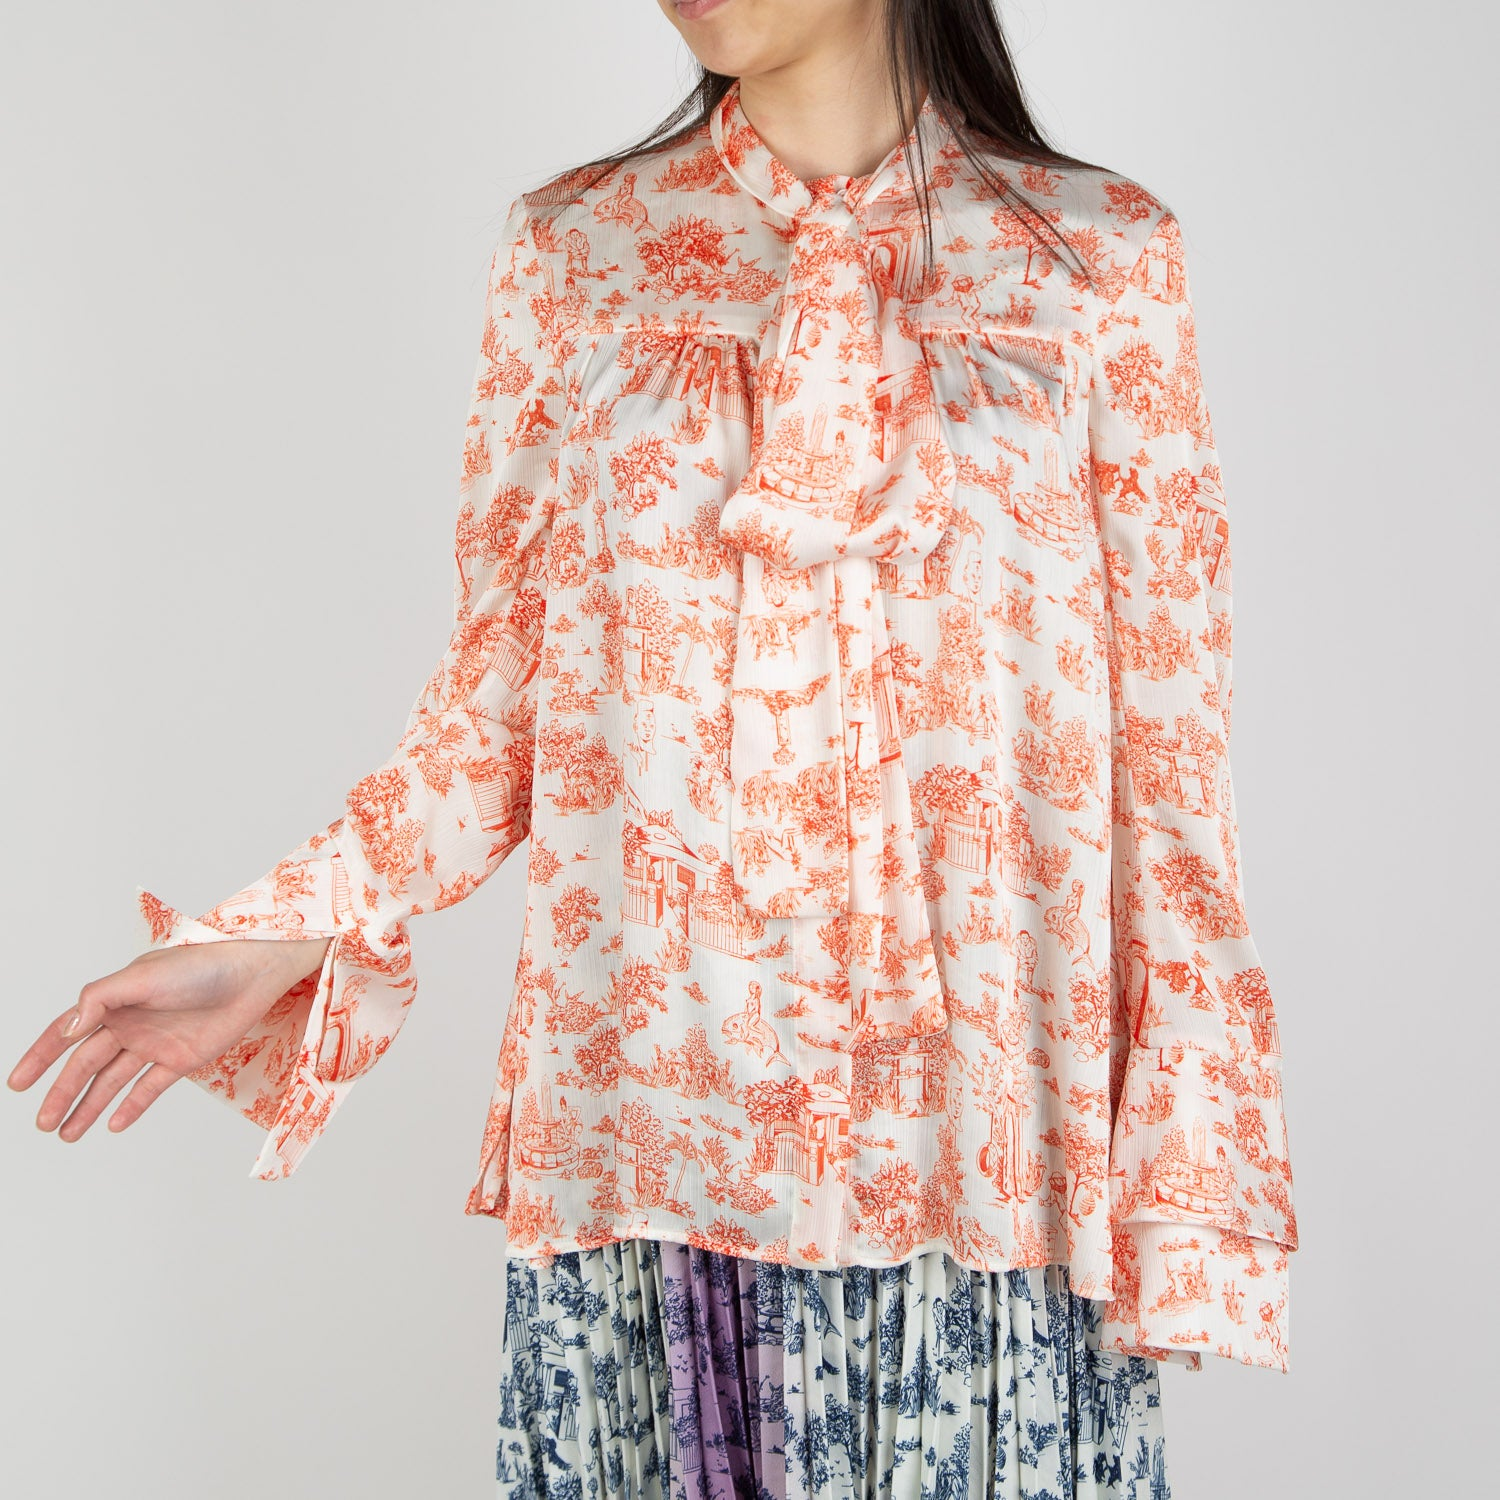 printed woodland blouse by Ssheena at Secret Location